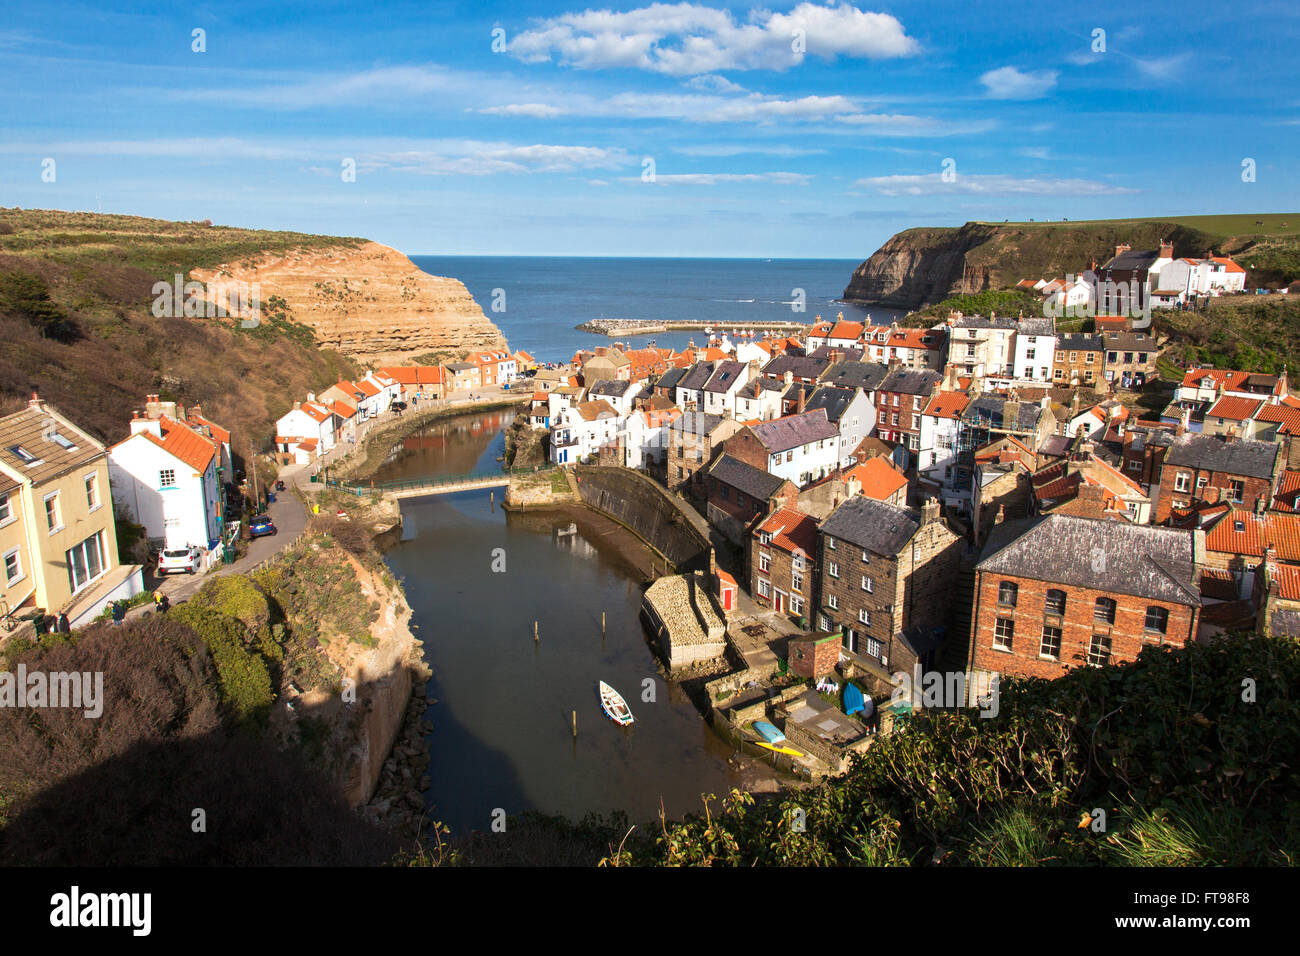 Staithes, North Yorkshire, England, U.K. 25th March 2016. A sunny Good Friday at the start of the Easter weekend - Stock Image